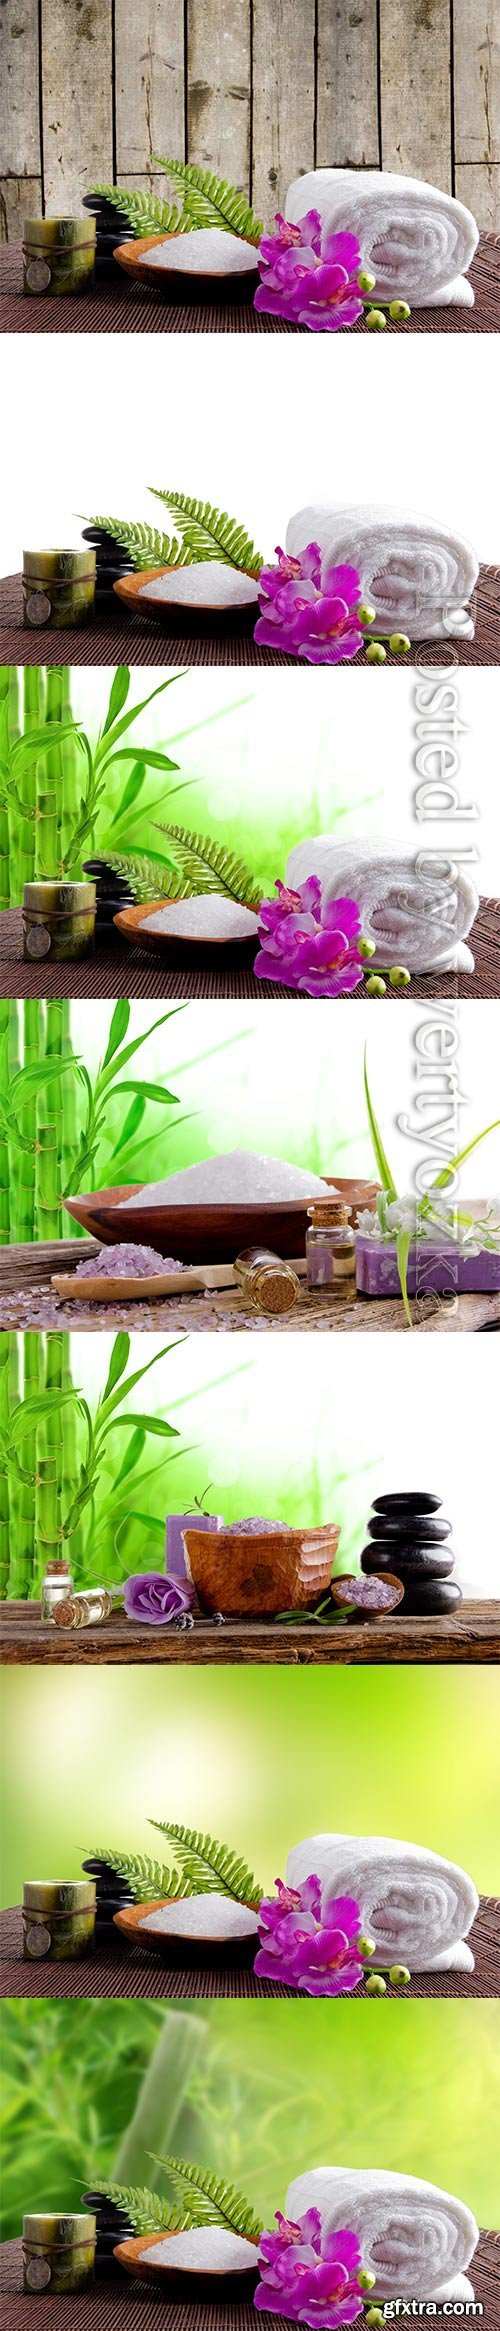 Spa backgrounds with bamboo branches, spa stones and orchids